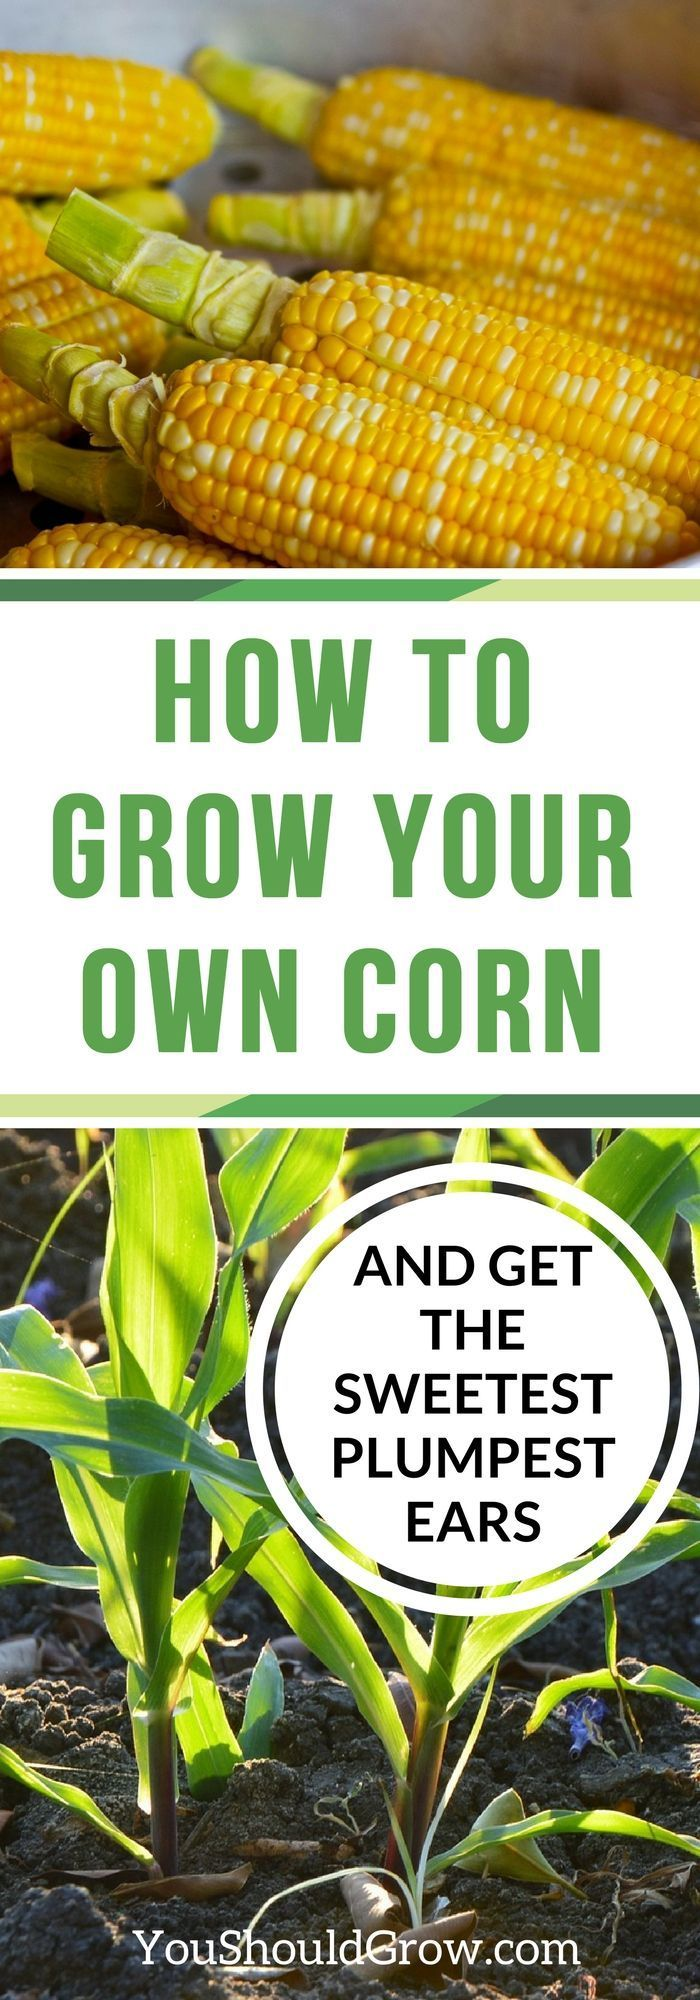 Corn For The Sweetest, Plumpest Ears Learn everything you need to know about growing corn. Click to read this in-depth article about planting, growing, harvesting and storing corn. via @whippoorwillgarLearn everything you need to know about growing corn. Click to read this in-depth article about planting, growing, harvesting and storing corn. v...